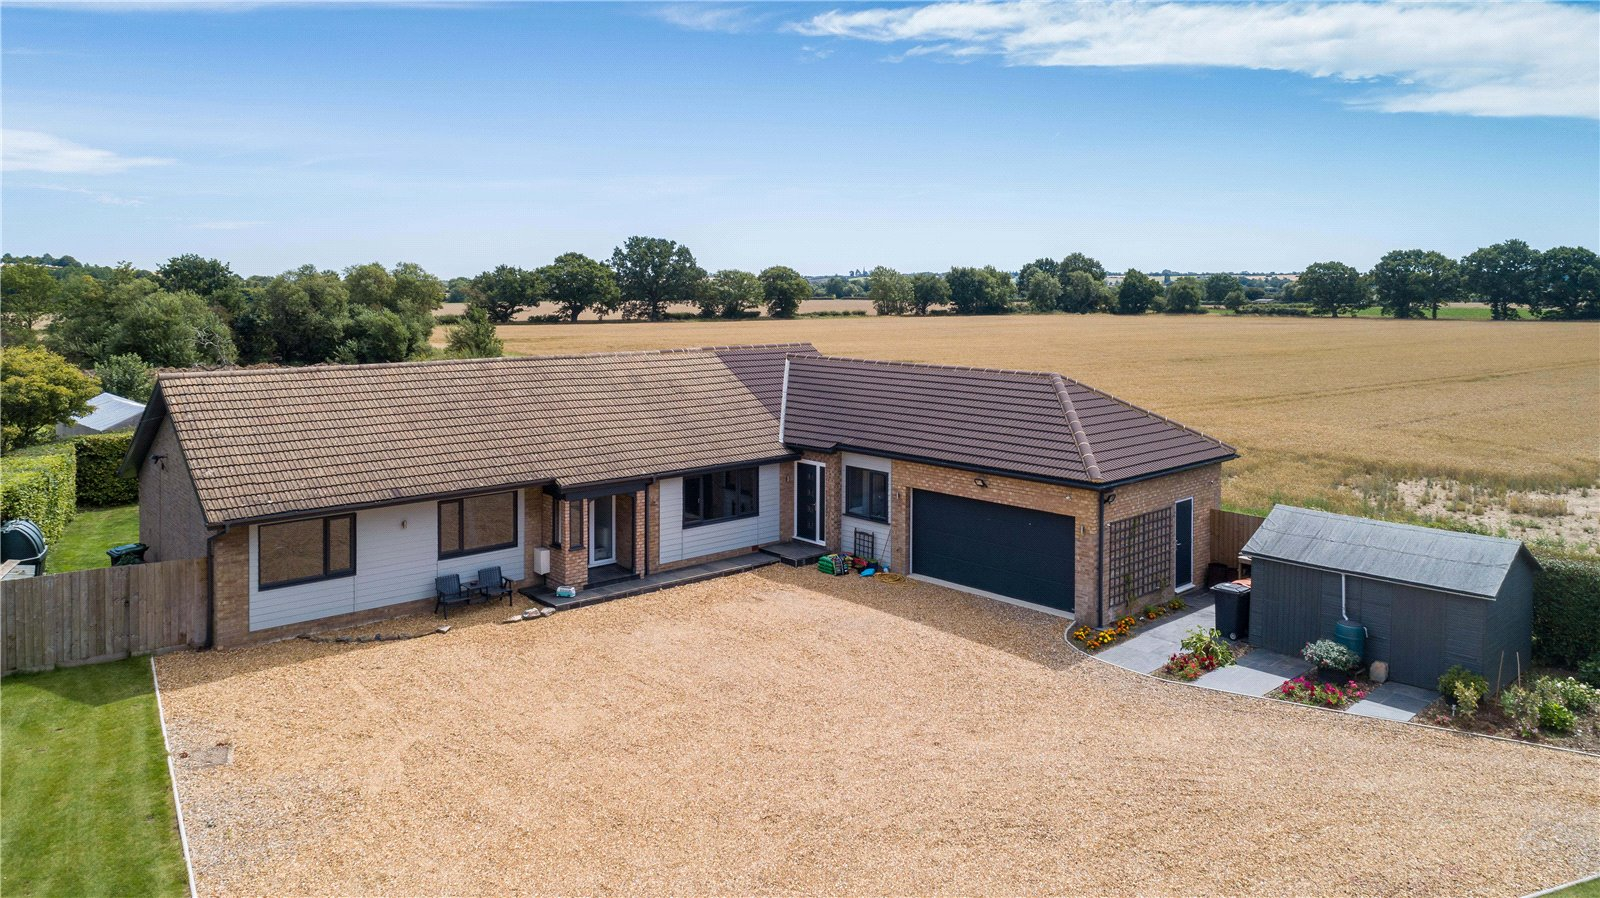 3 bed bungalow for sale in Pertenhall, MK44 2BD, MK44